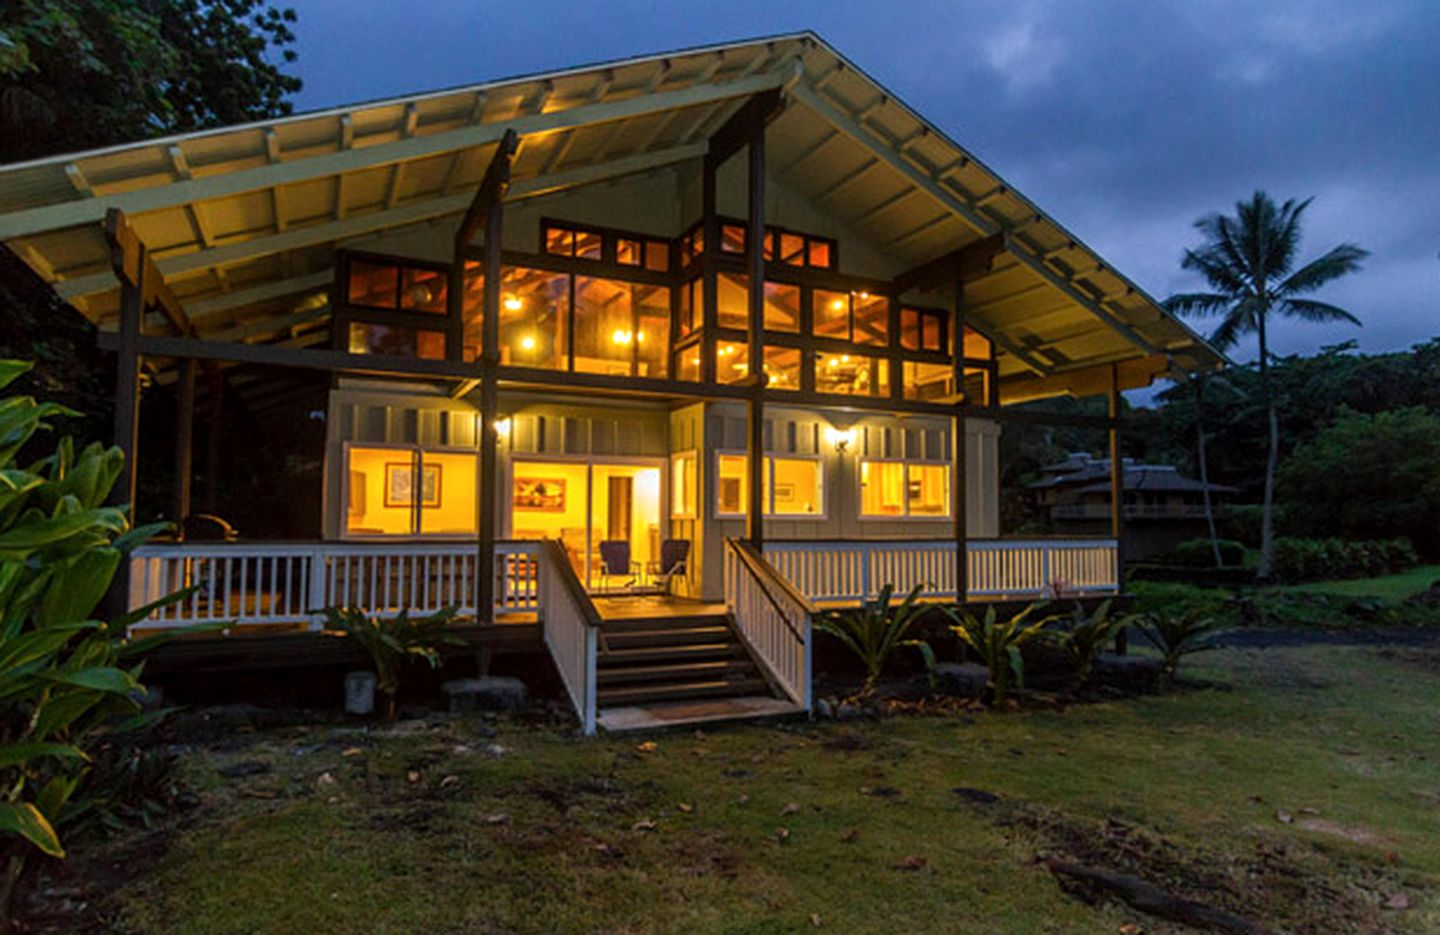 Luxury Maui cottage at night with wrap-around deck for Hawaii beach vacation.